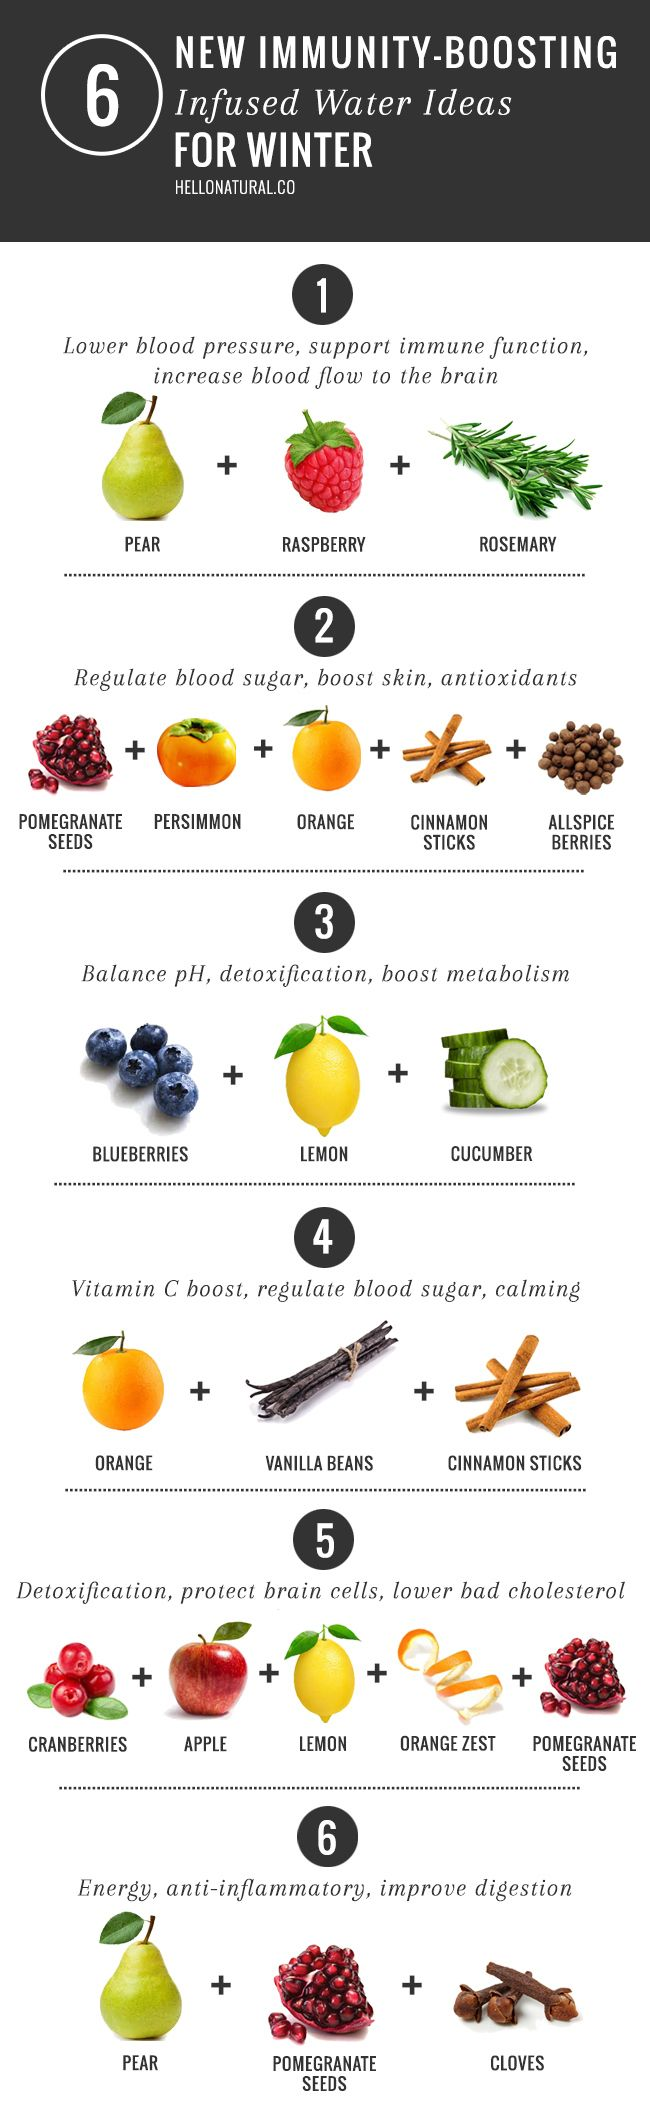 infused water immunity boosting